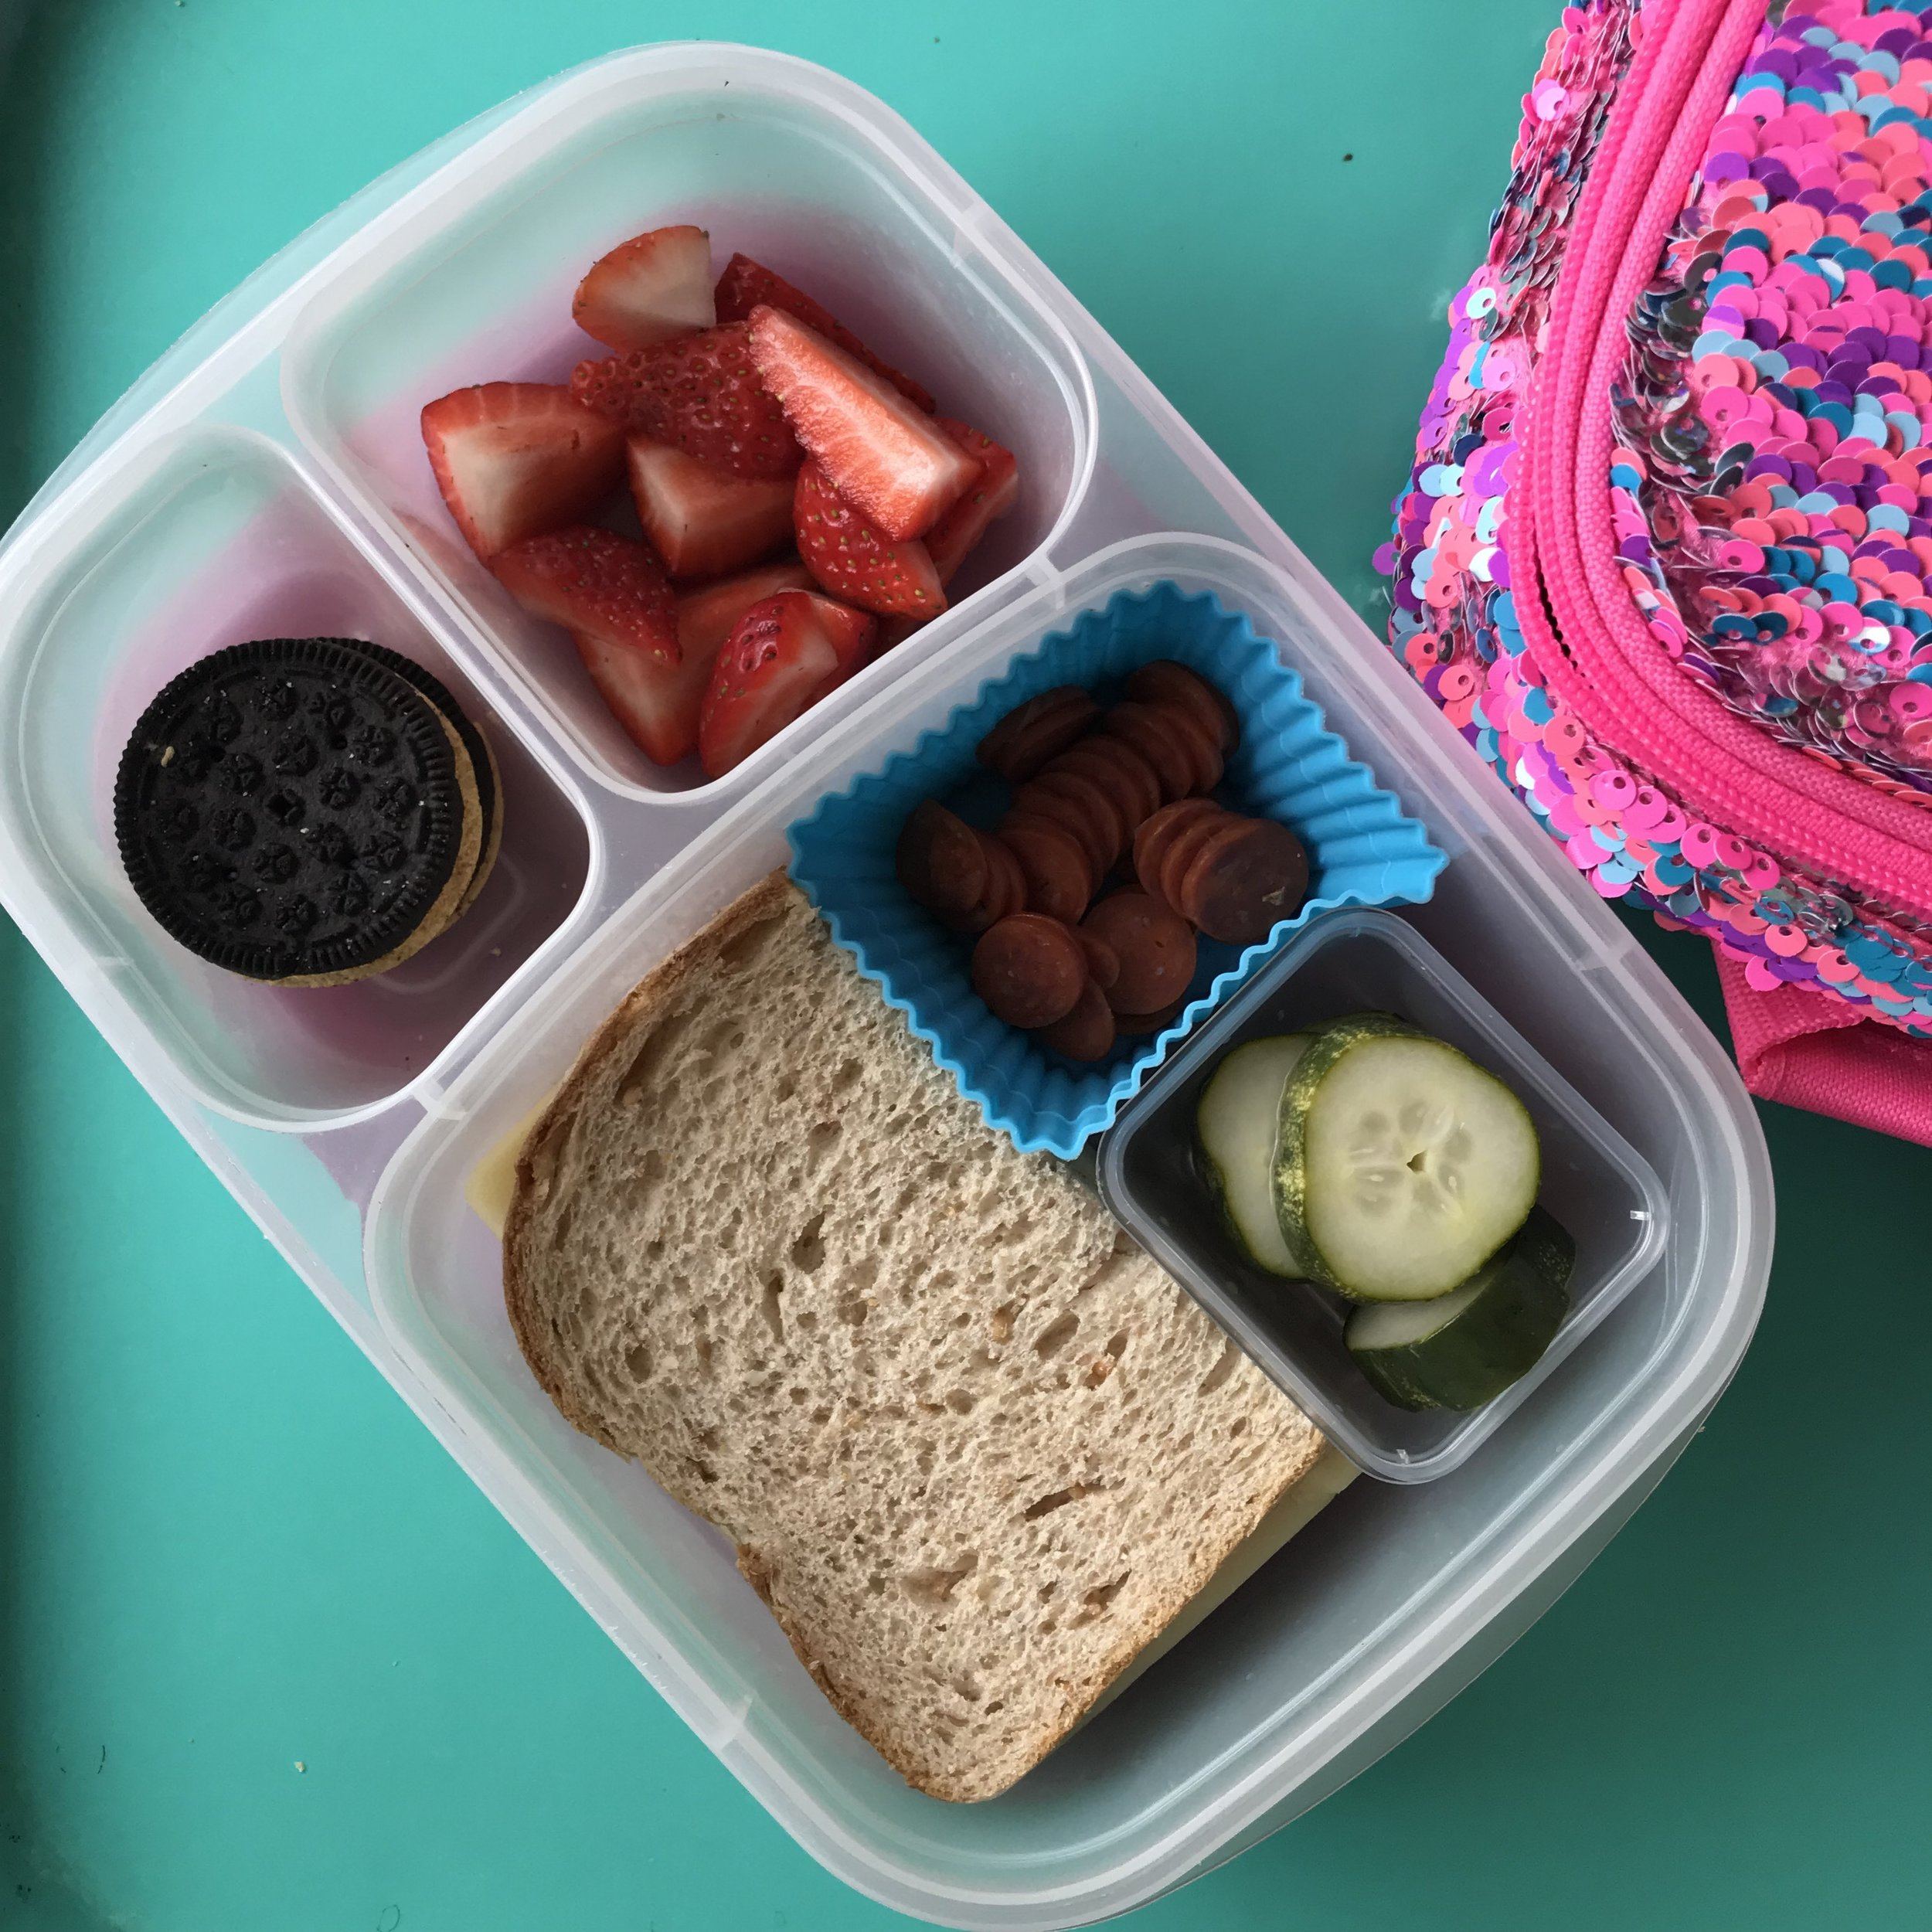 School Lunch ideas for kids: We've got them ALL and then some | Didn't I Just Feed You, a food podcast for parents